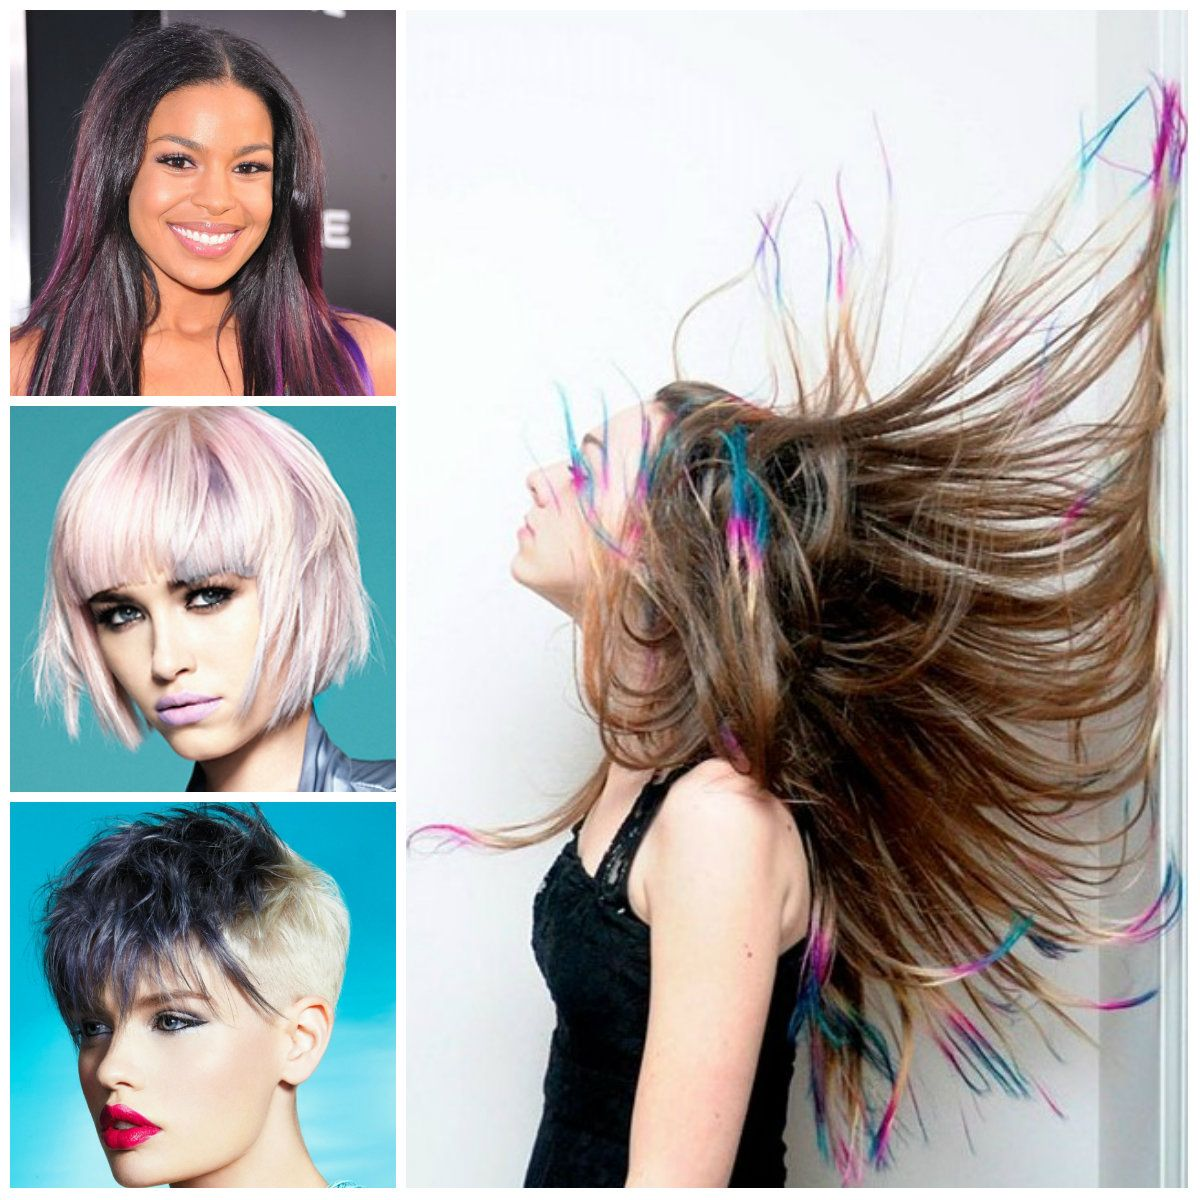 Hairstyles 2016 dark hair - Hair Highlights Haircuts Hairstyles 2016 2017 And Hair Colors For Short Long